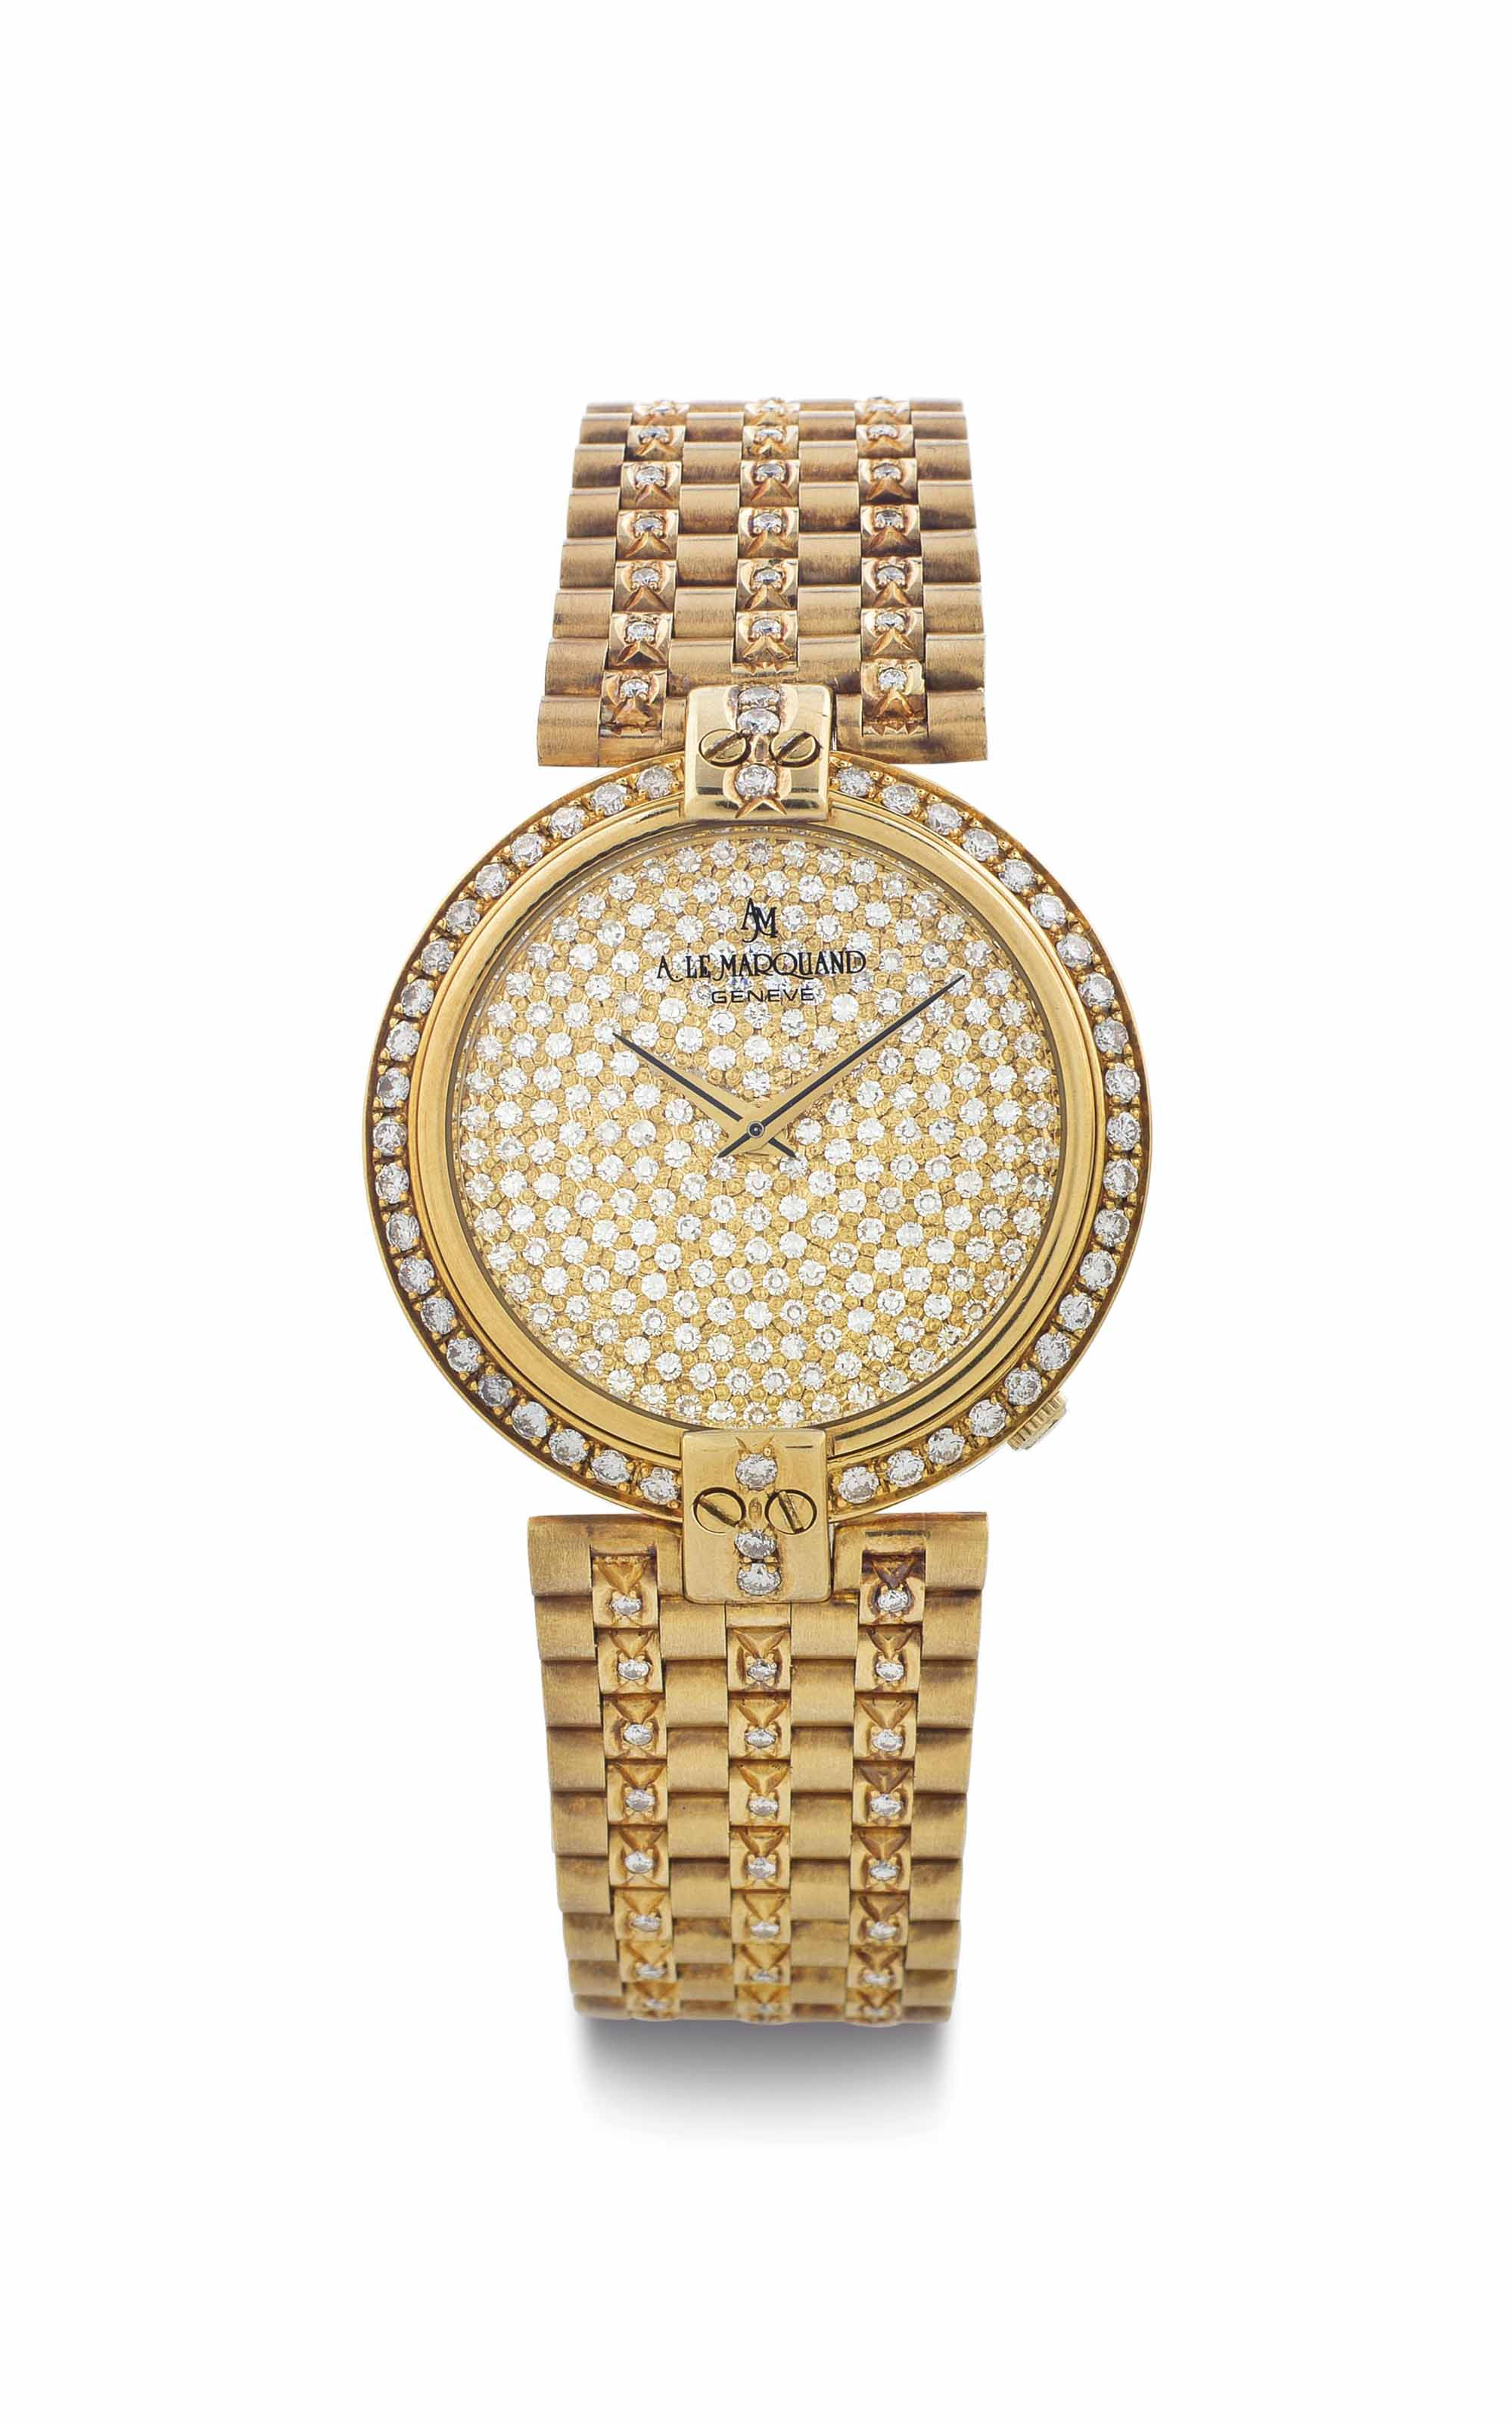 Andre Le Marquand. An 18k Gold and Diamond-Set Bracelet Watch